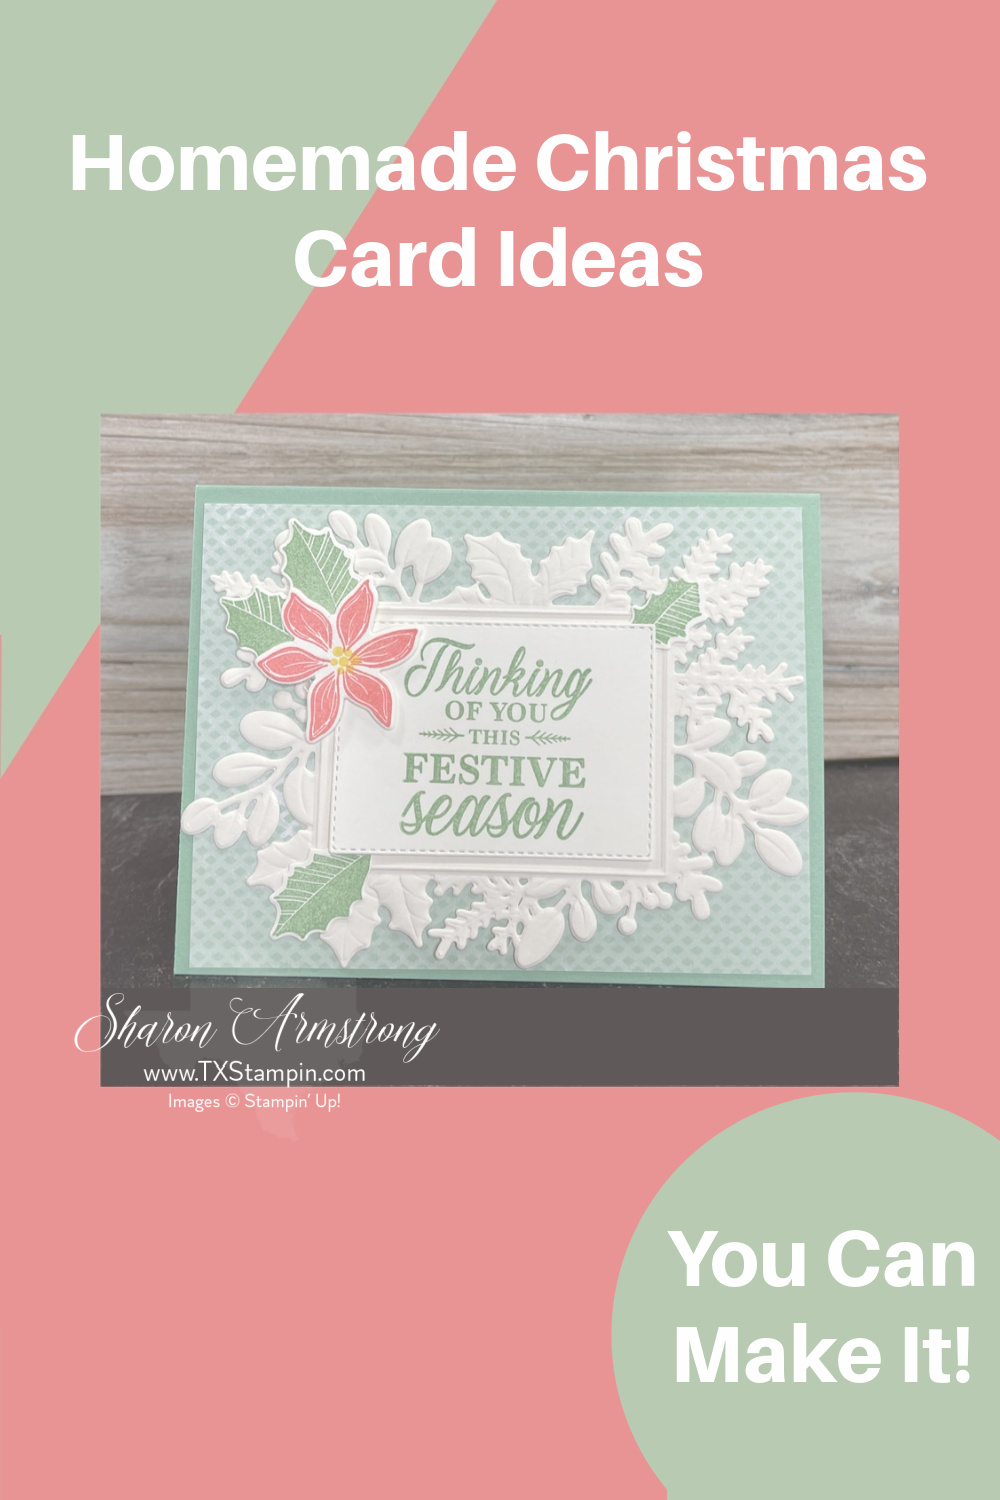 Homemade-christmas-card-ideas-to-save-to-pinterest.